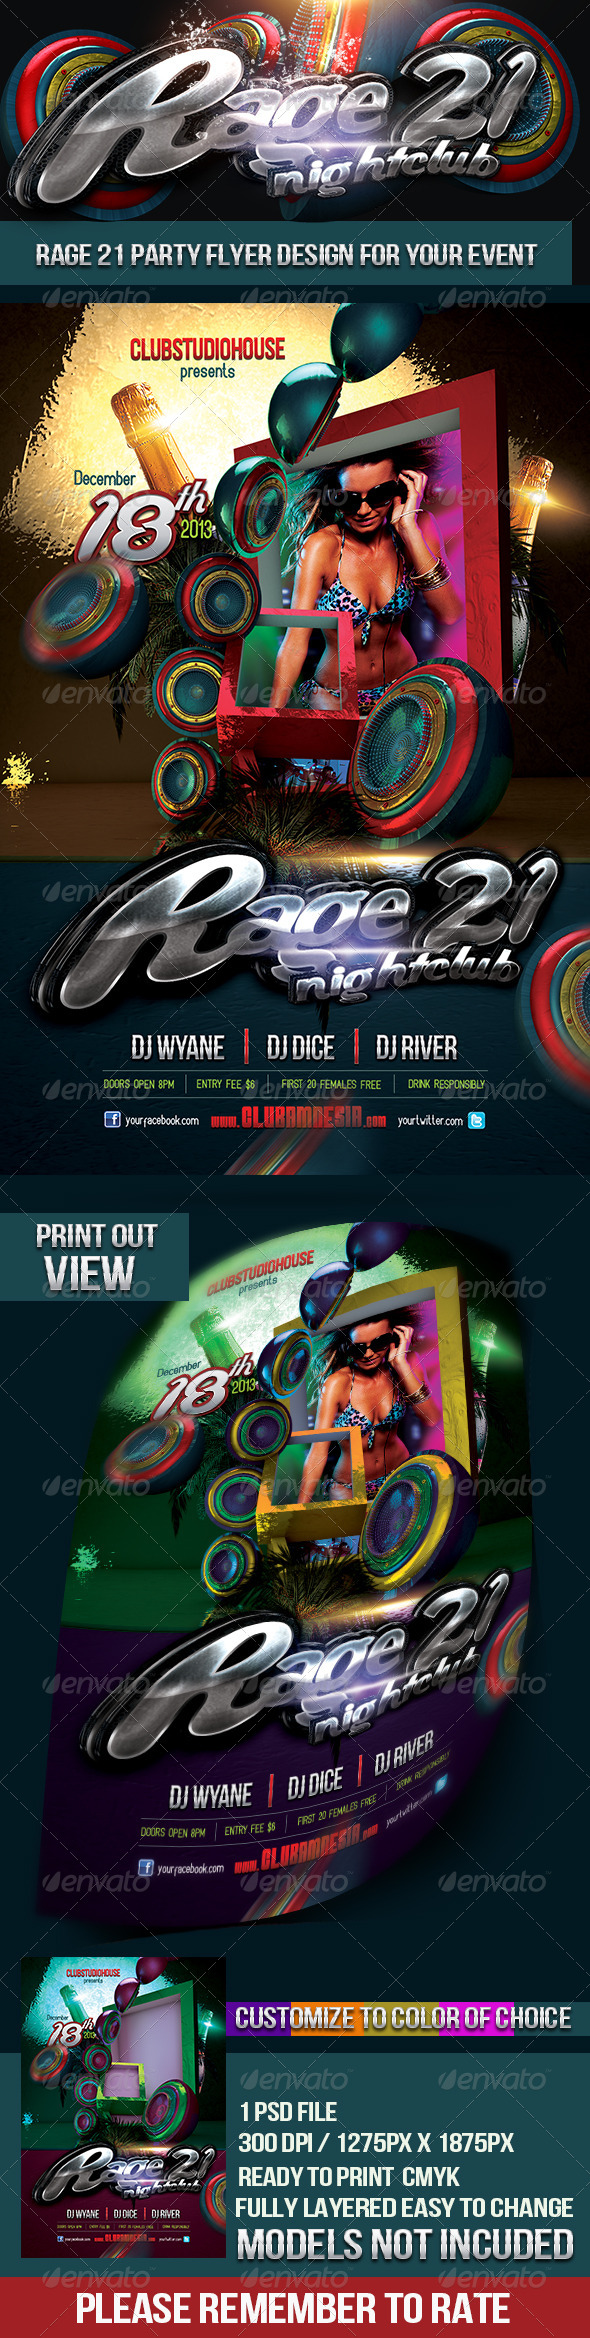 Rage 21 Nightclub Party Flyer - Clubs & Parties Events